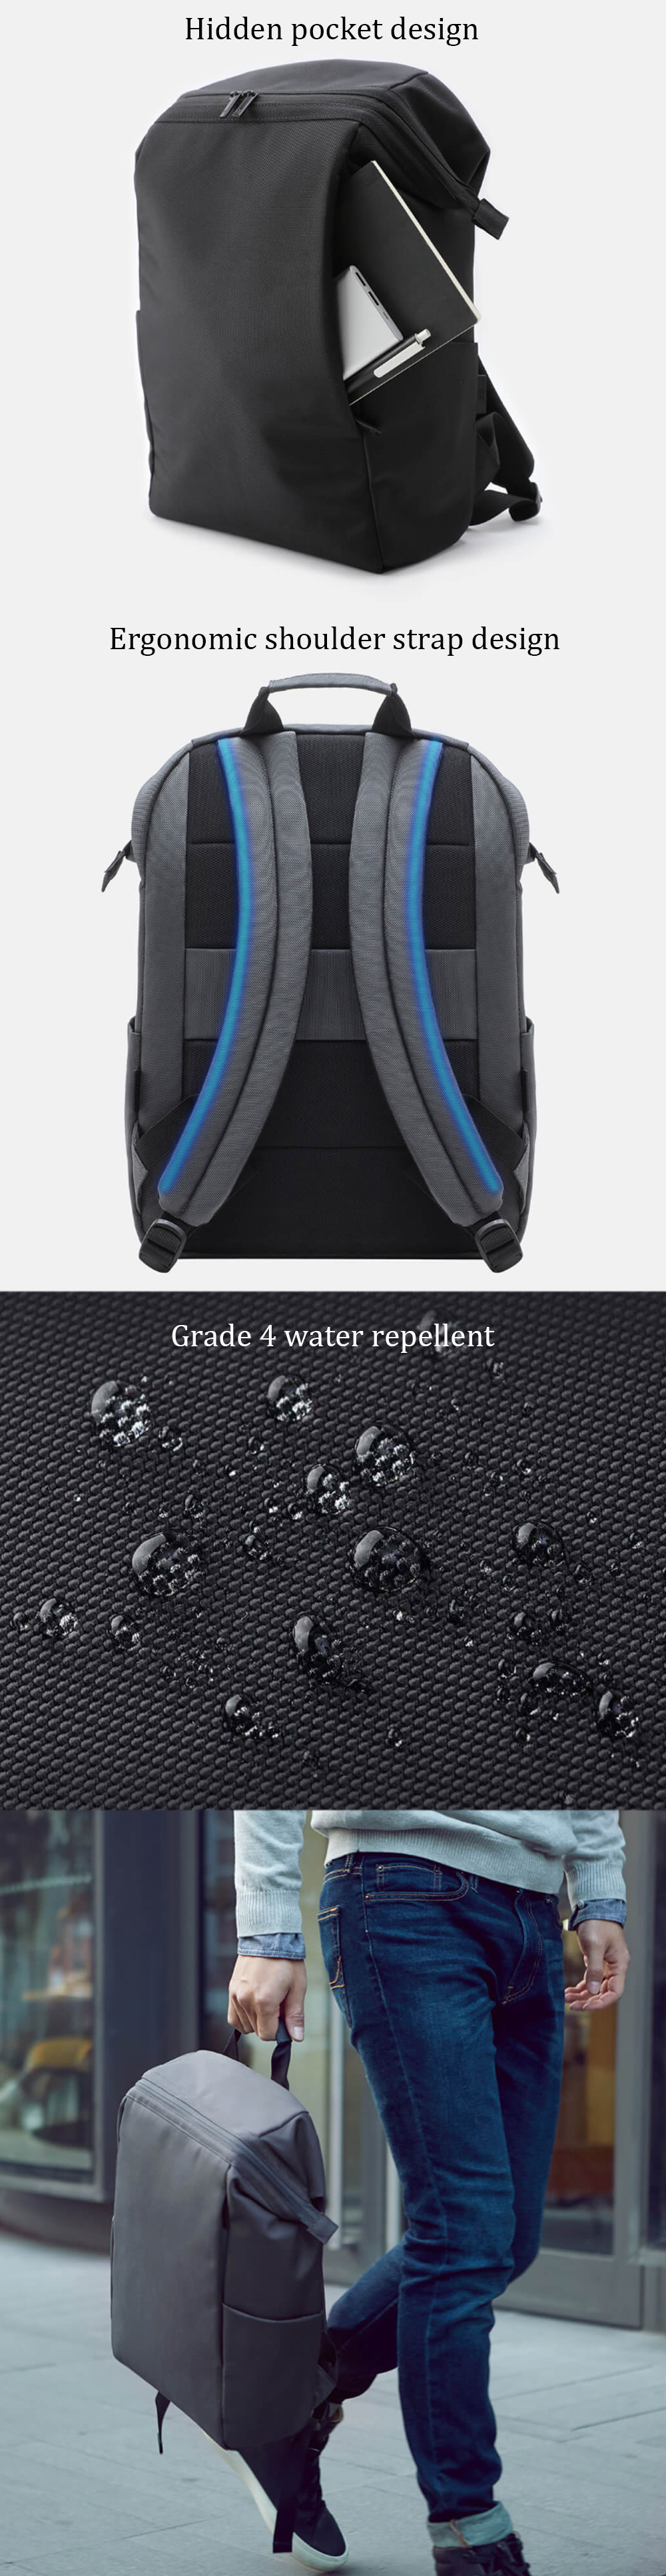 Xiaomi 90 Fun Backpack 15.6 Inch Laptop Bag Level 4 Water Repellent Travel Leisure Shoulder Bag